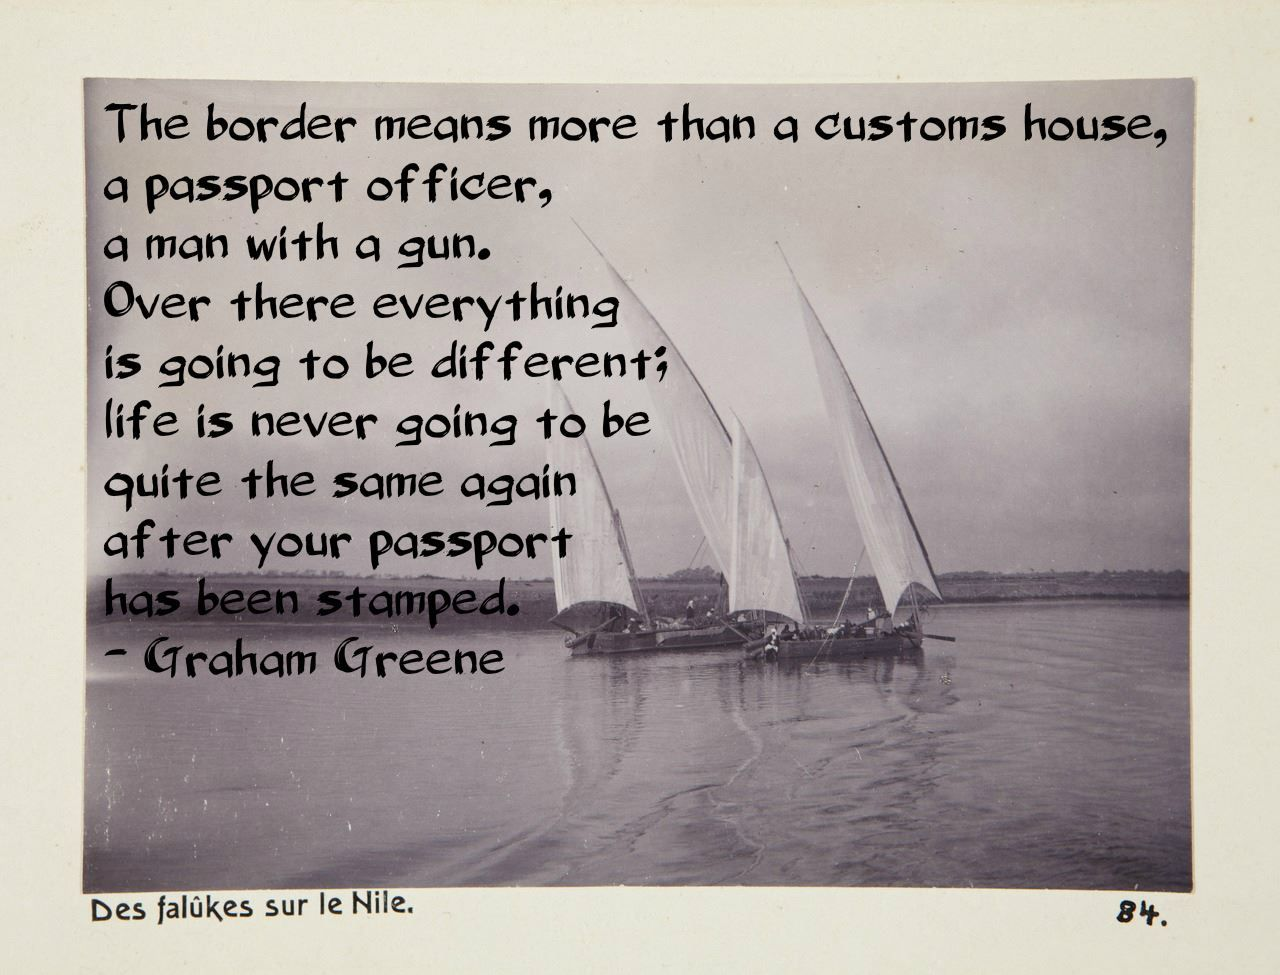 """Graham Greene: """"Life is never going to be quite the same again after your passport has been stamped."""" From The Lawless Roads, 1939, about the Mexico-US border at Laredo (no sailboats there ...)"""